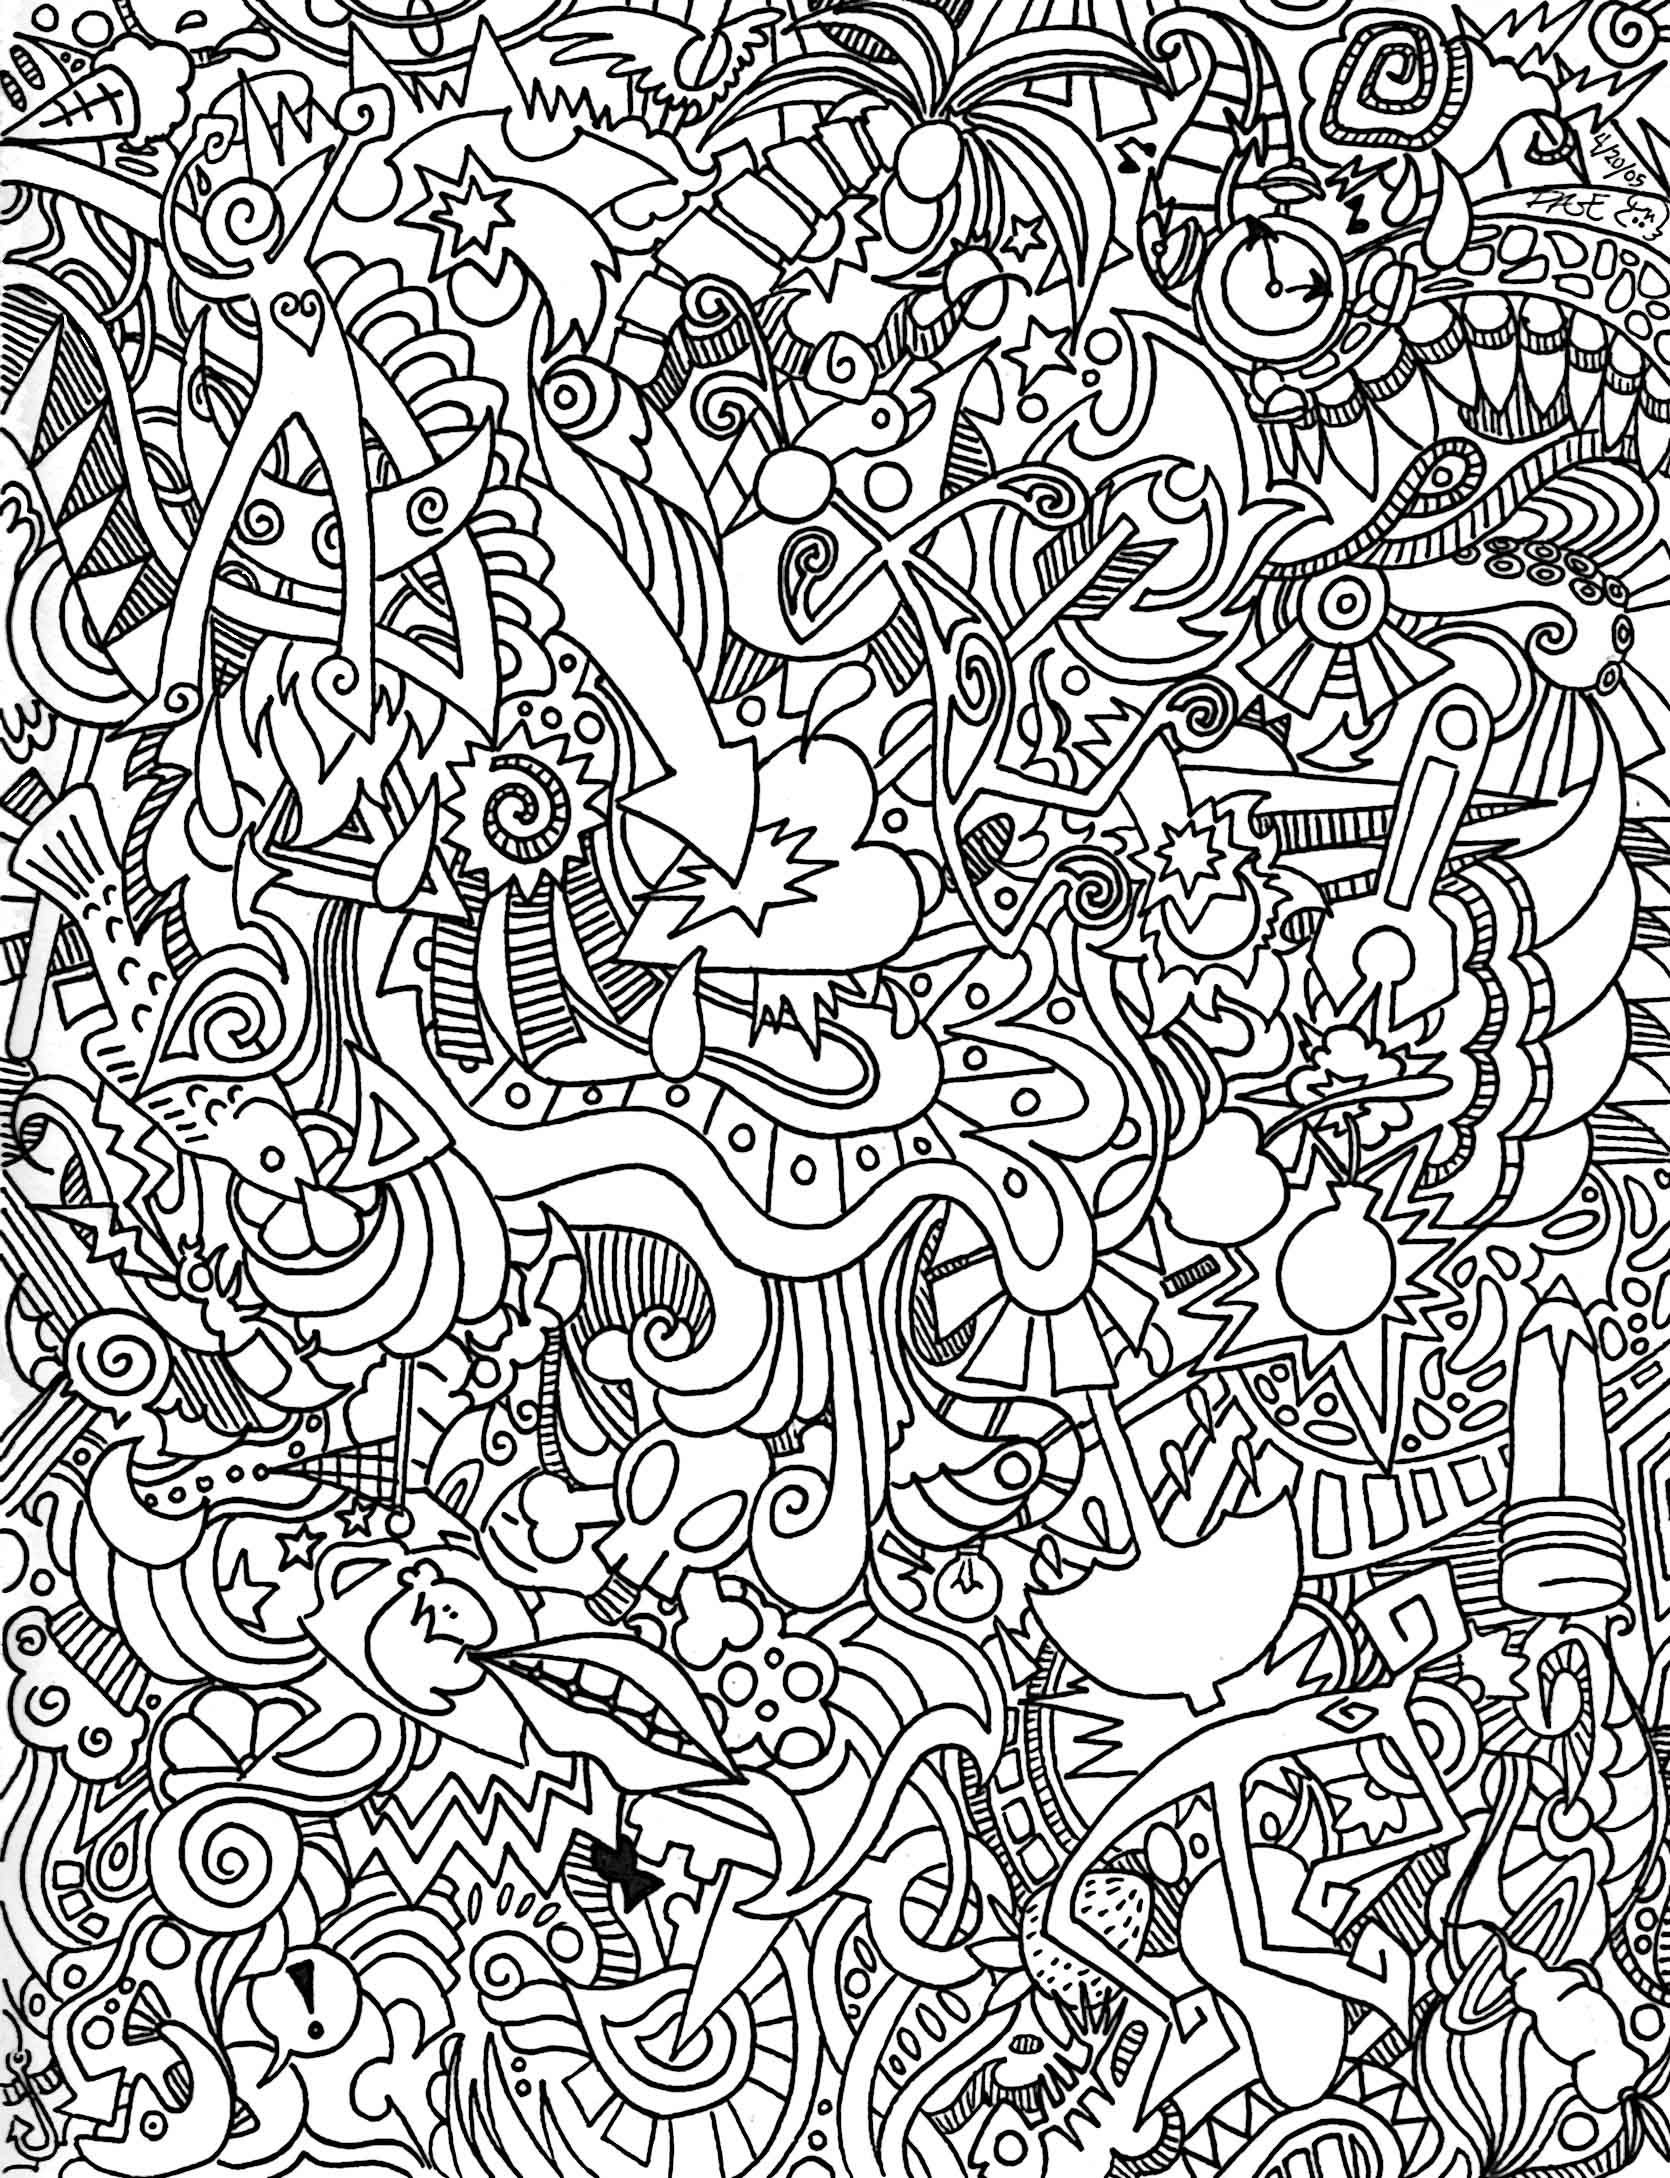 Full Page Insanity 1 | Abstract coloring pages, Space coloring pages, Mandala  coloring pages